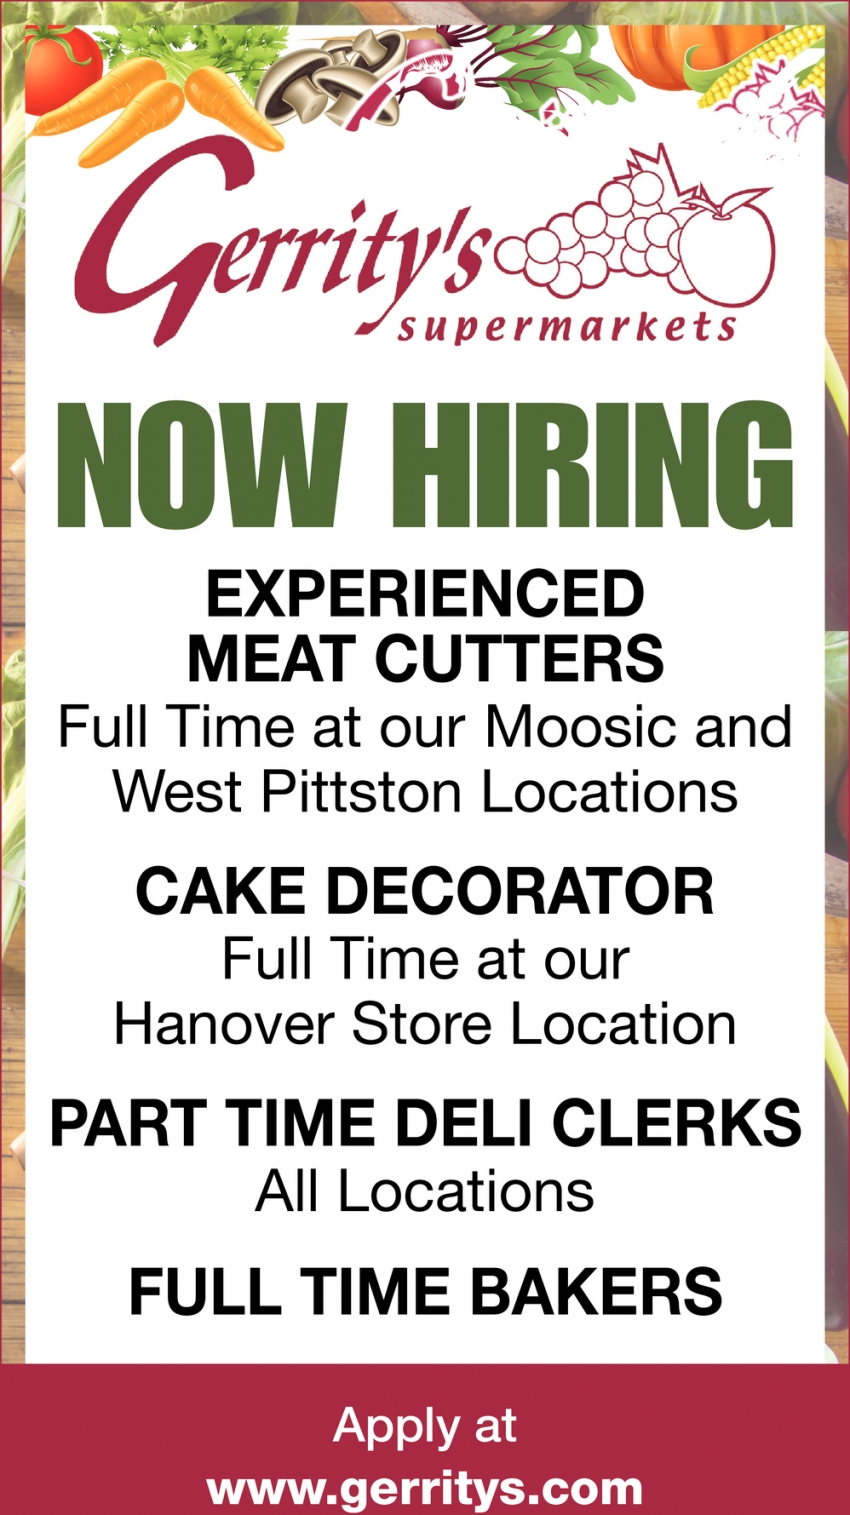 Experienced Meat Cutters - Cake Decorator - Part Time Deli Clerks - Full Time Bakers